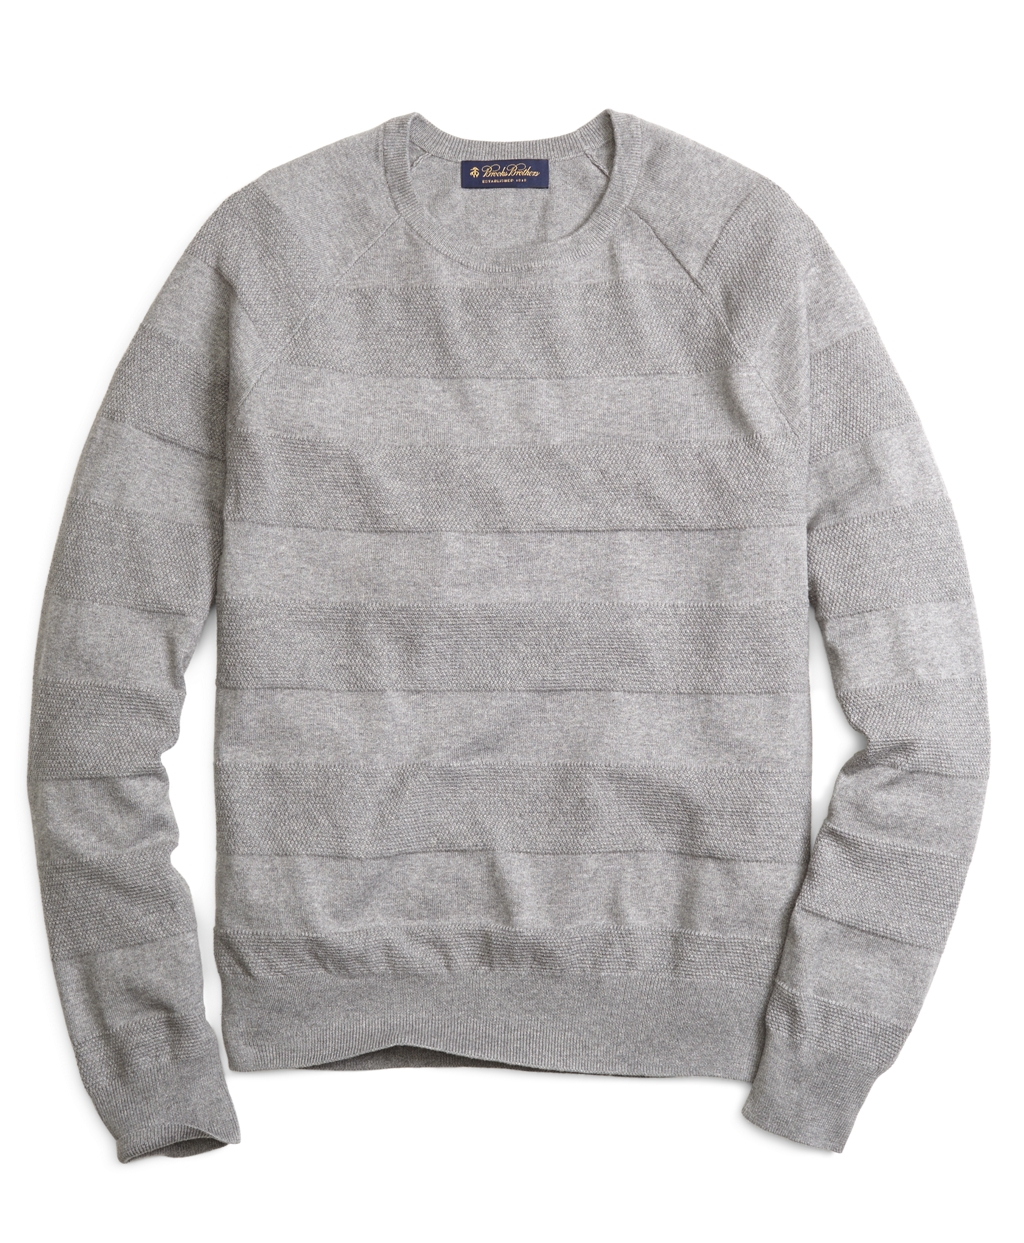 Brooks brothers Cotton Cashmere Crewneck Tonal Stripe Sweater in ...